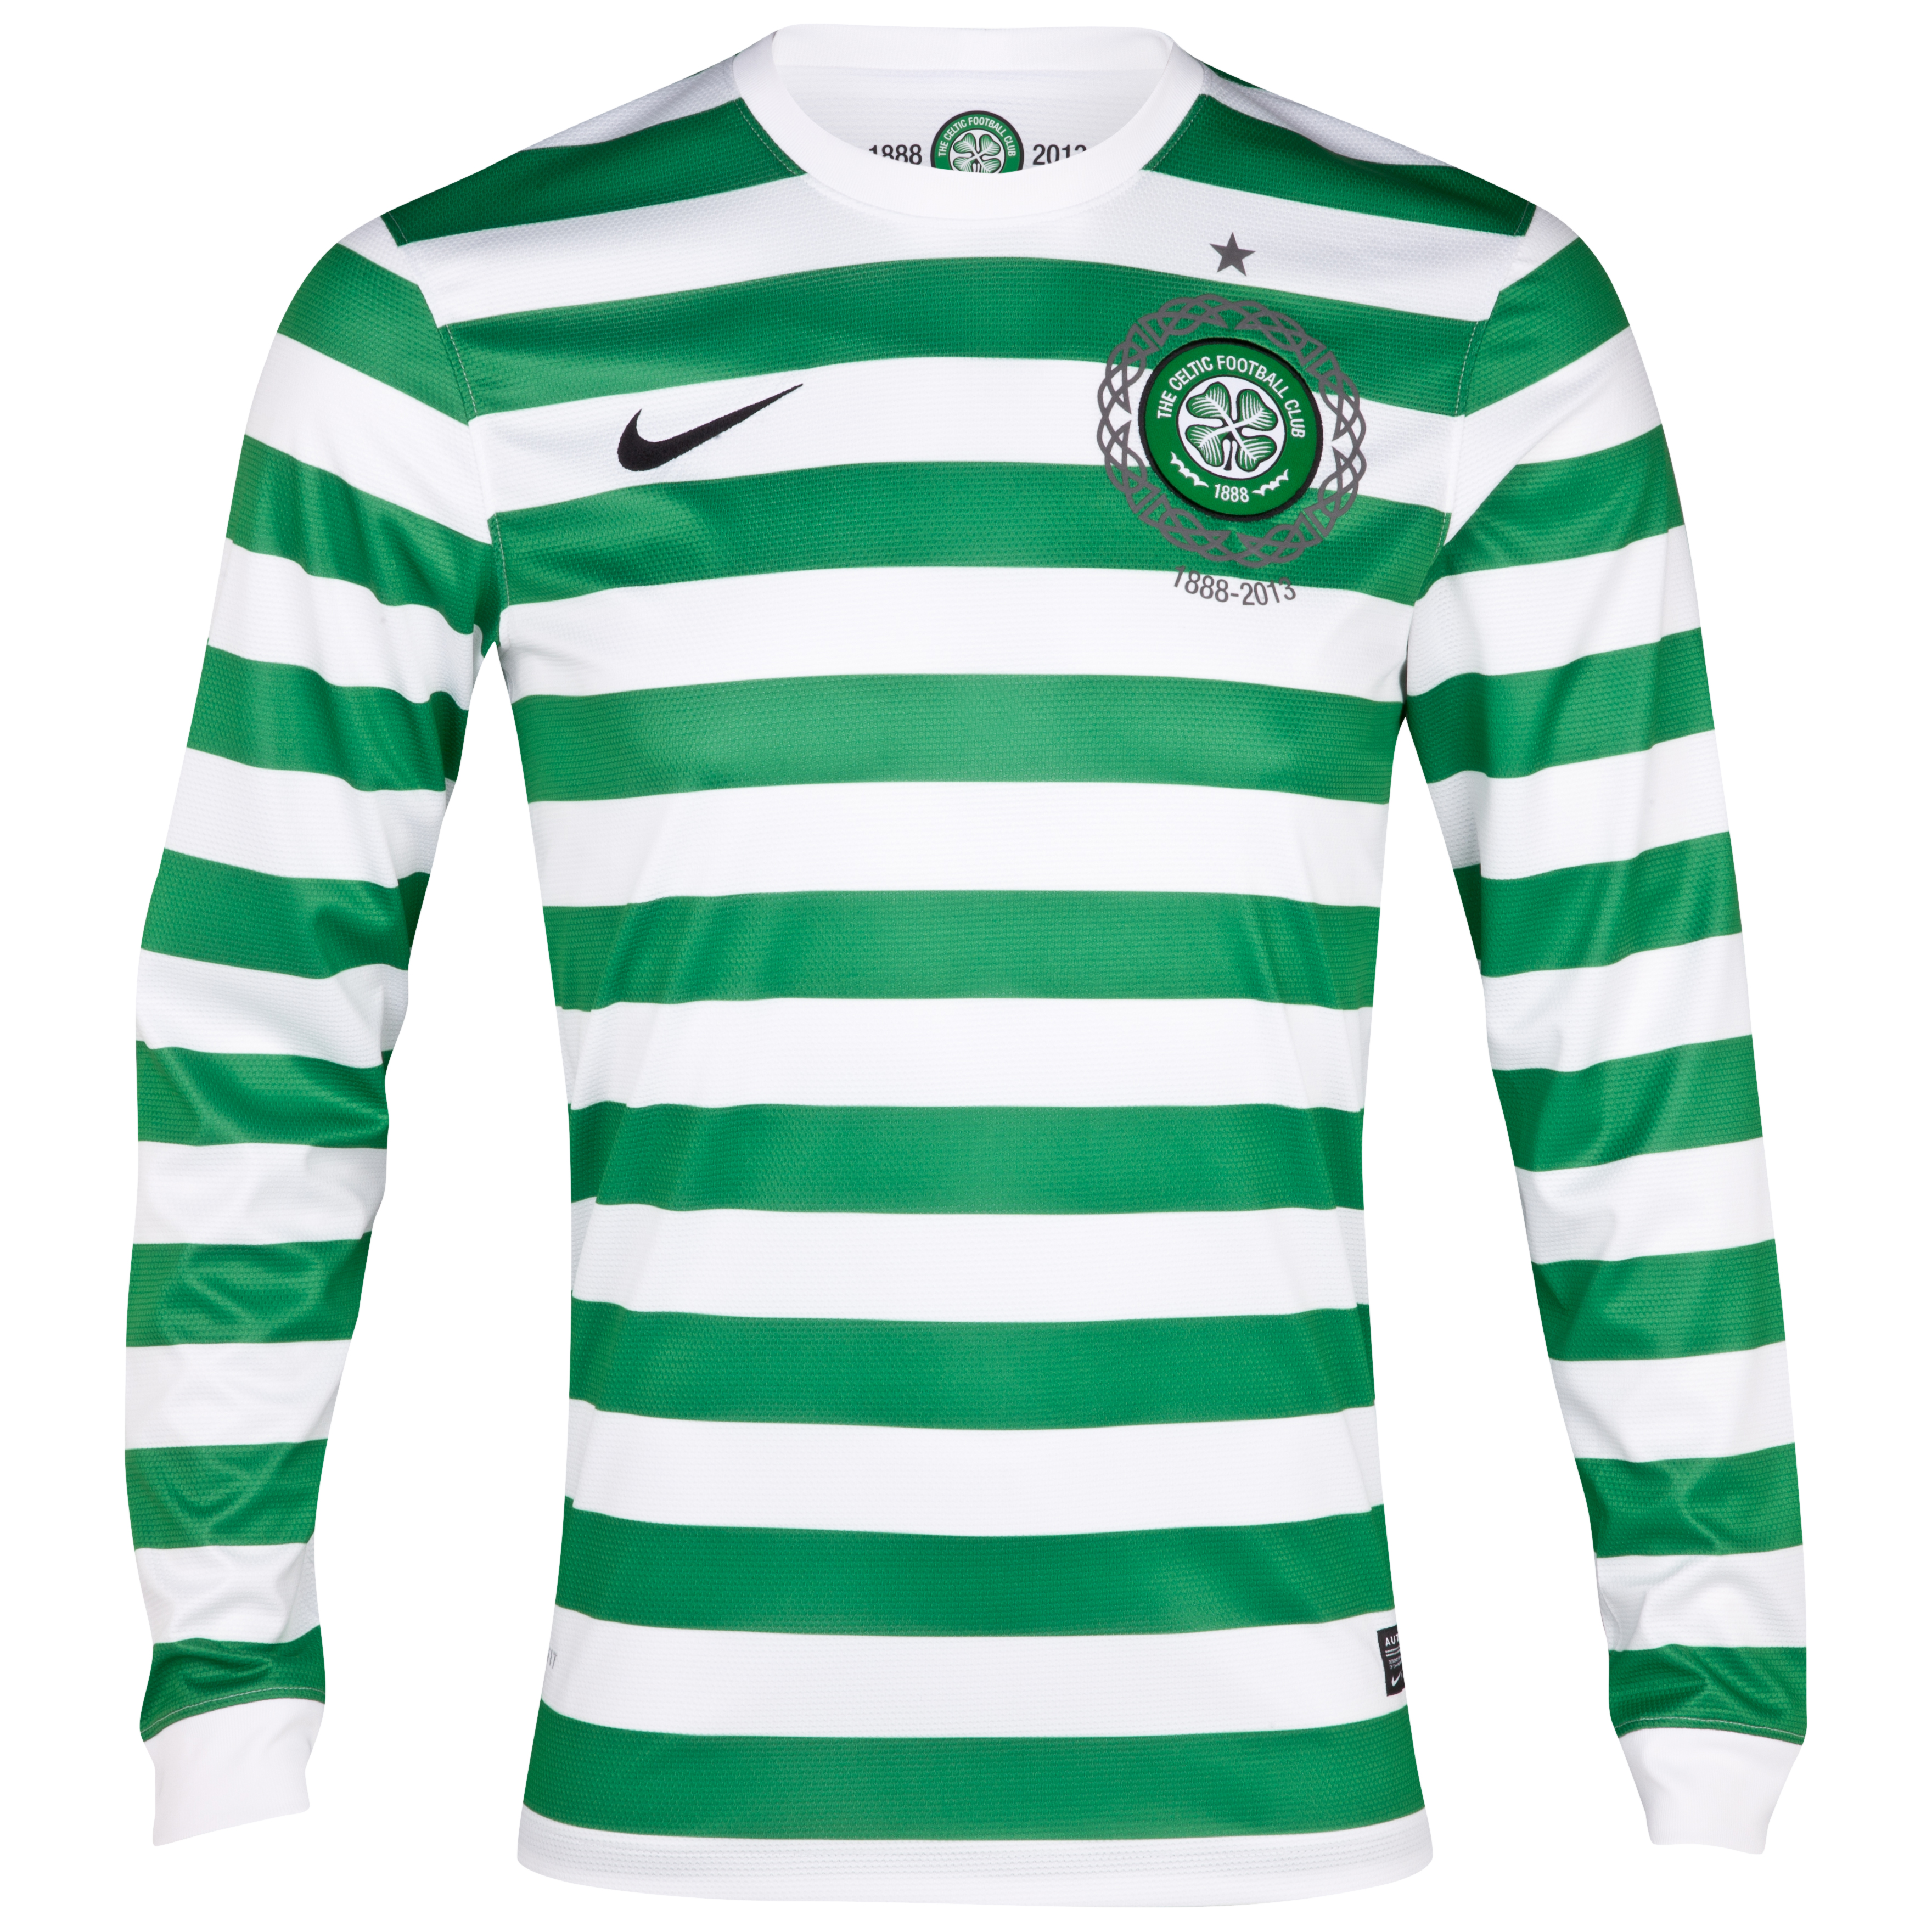 Celtic Home Shirt 2012/13 - Long Sleeved - No Sponsor